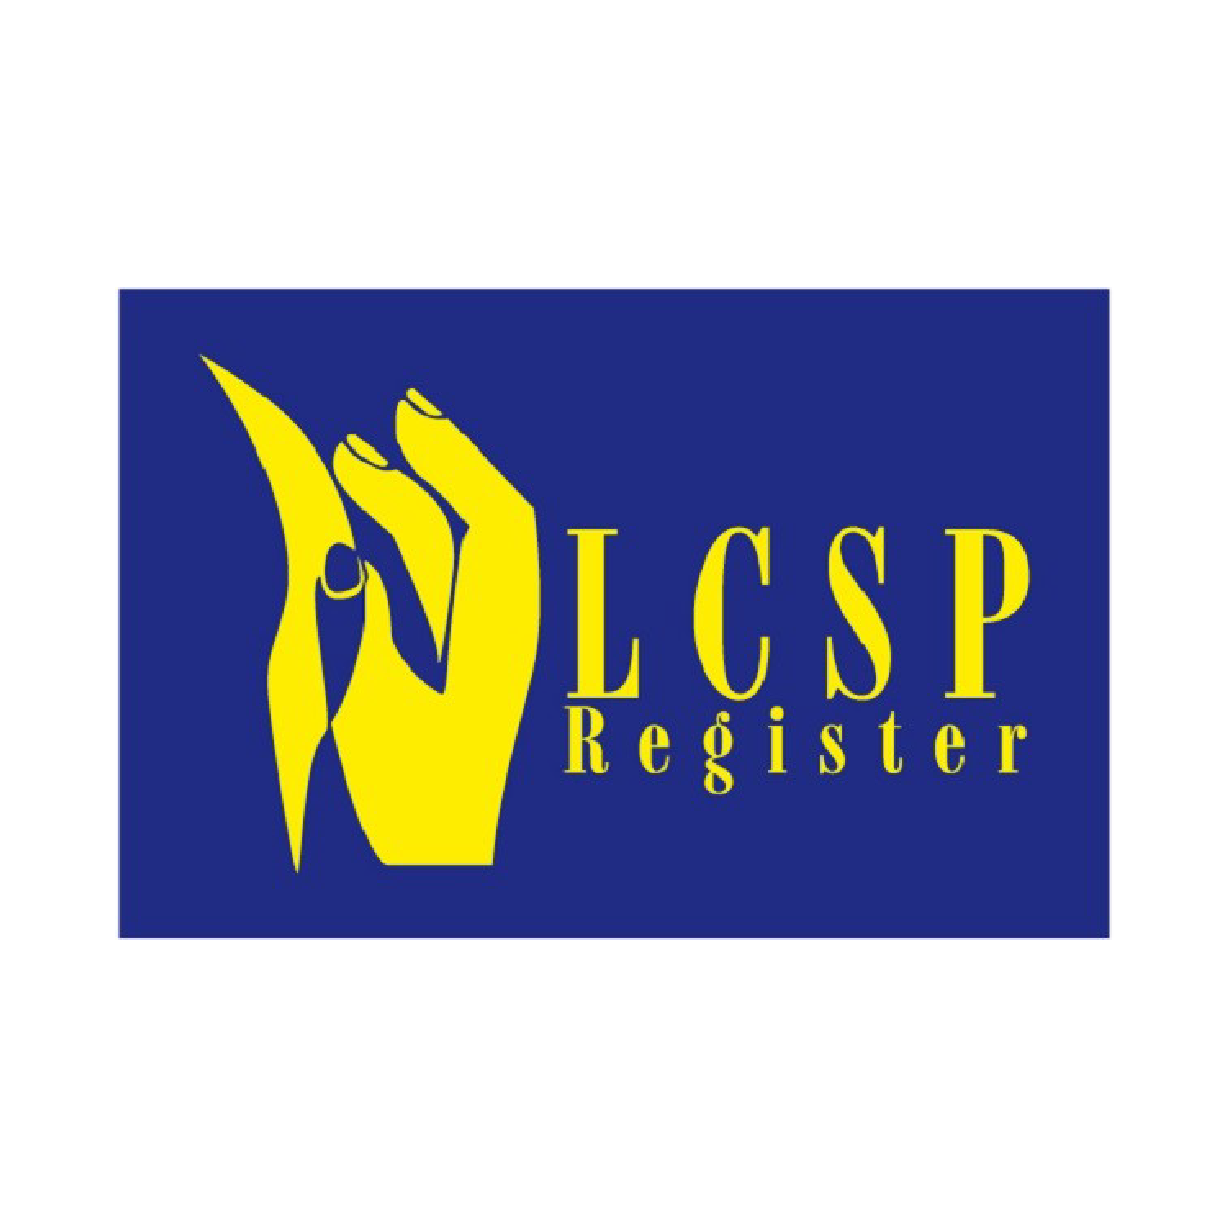 The London & Counties Society of Physiologists was founded in 1919 and is the oldest-established and largest organisation of private practitioners of remedial massage and manipulative therapy in the U.K. At the present time it represents practitioners and students of these therapies.